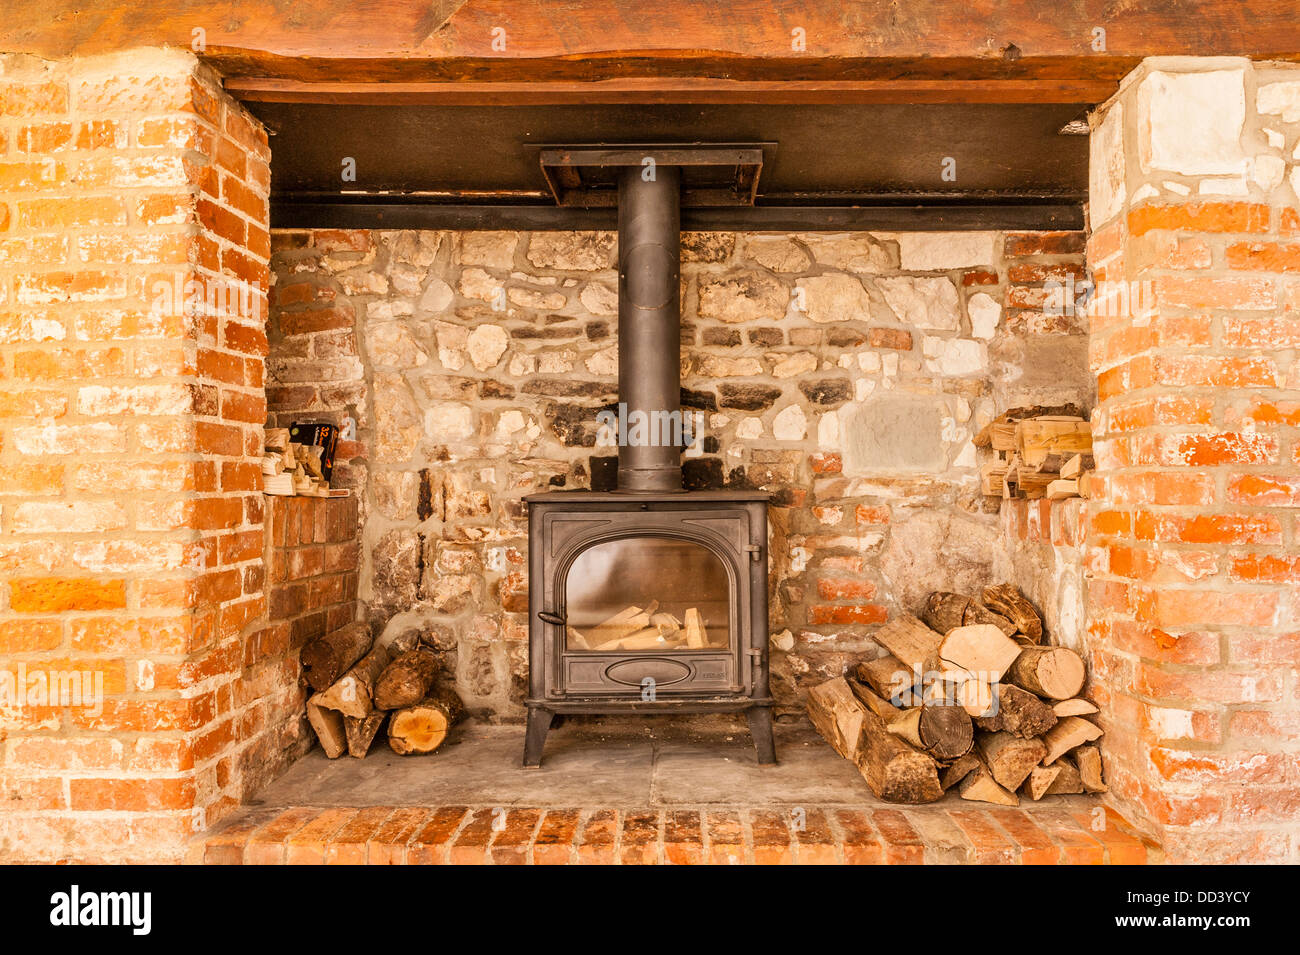 An inglenook fireplace with a woodburner - Stock Image